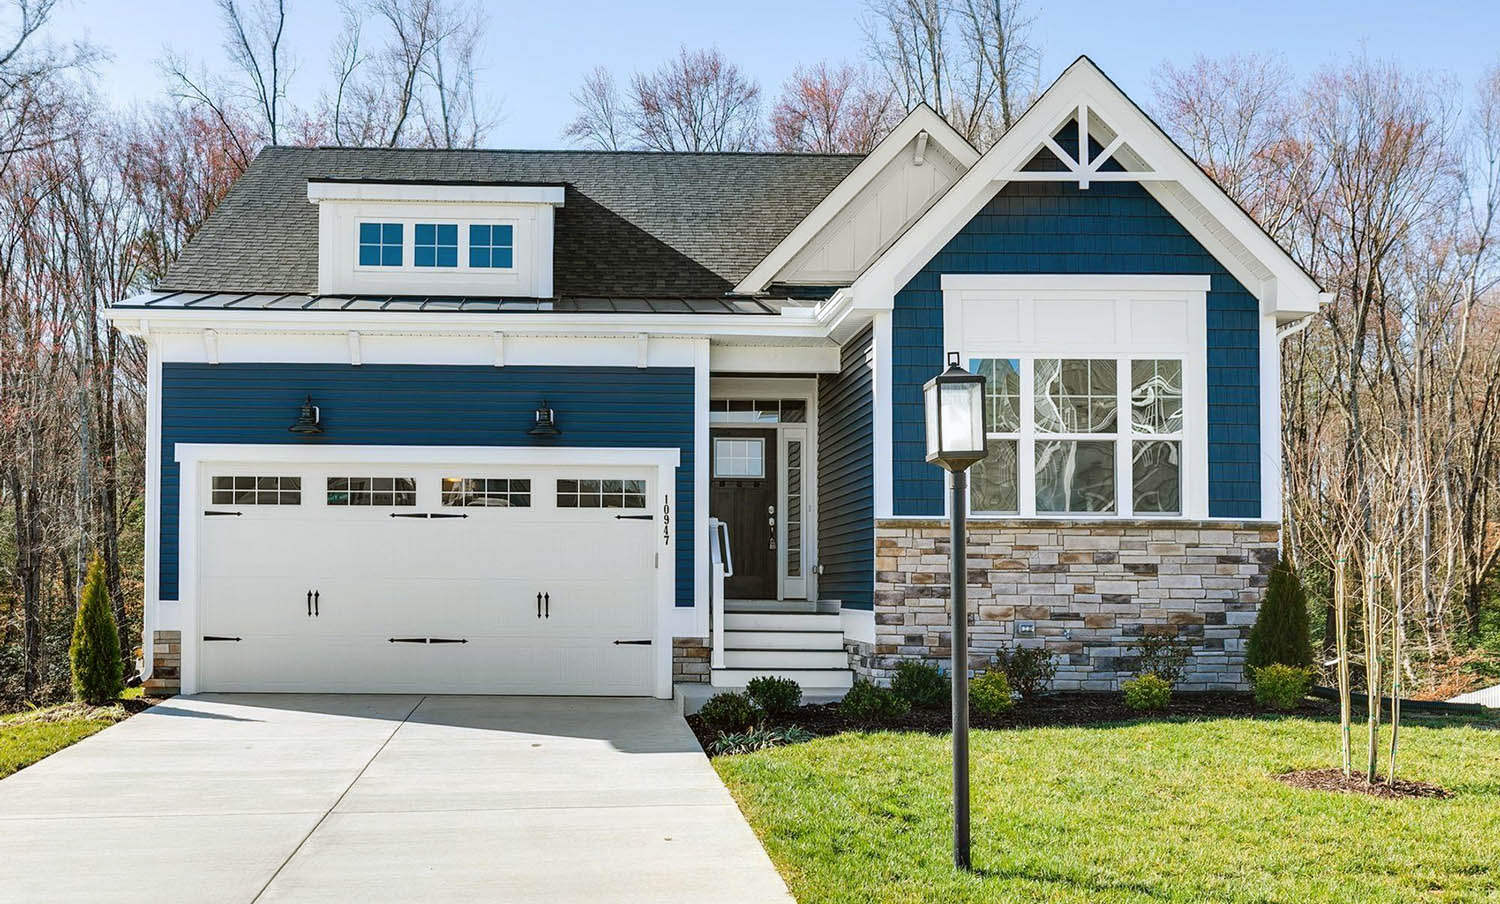 Small Royal Blue Home With White Trim & Coffee Bean Front Door